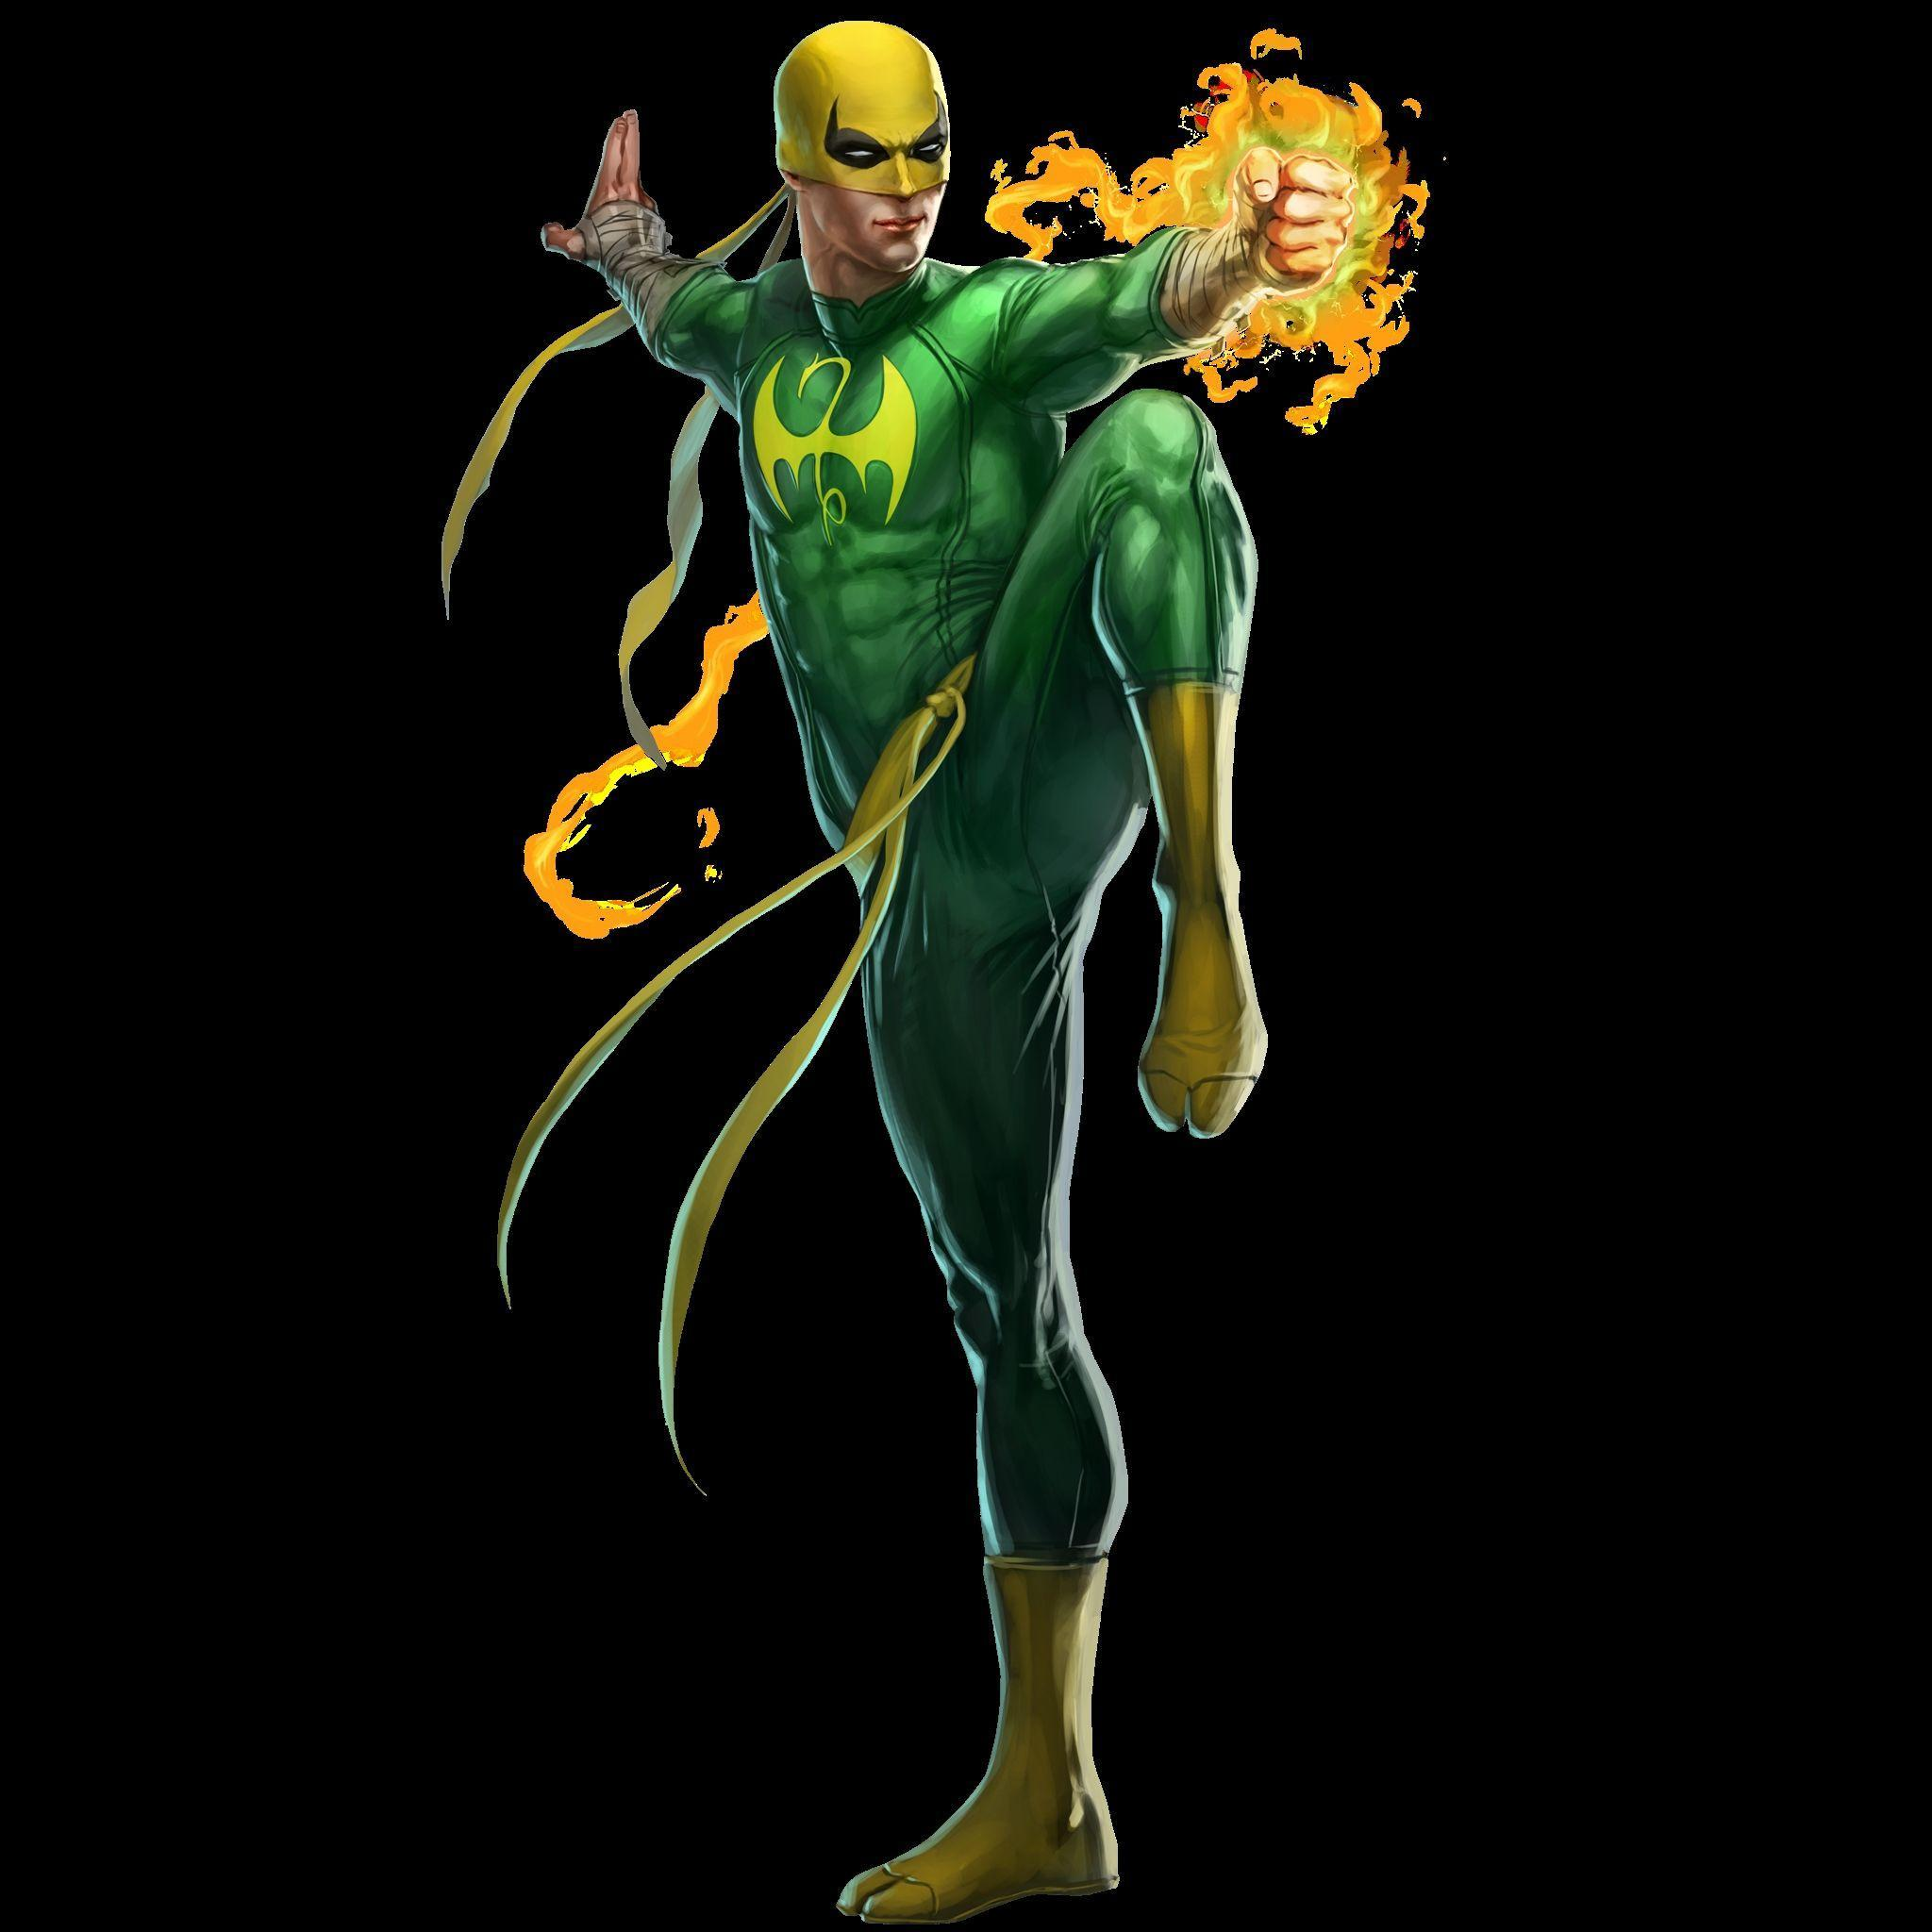 Iron Fist Marvel Hd Wallpapers